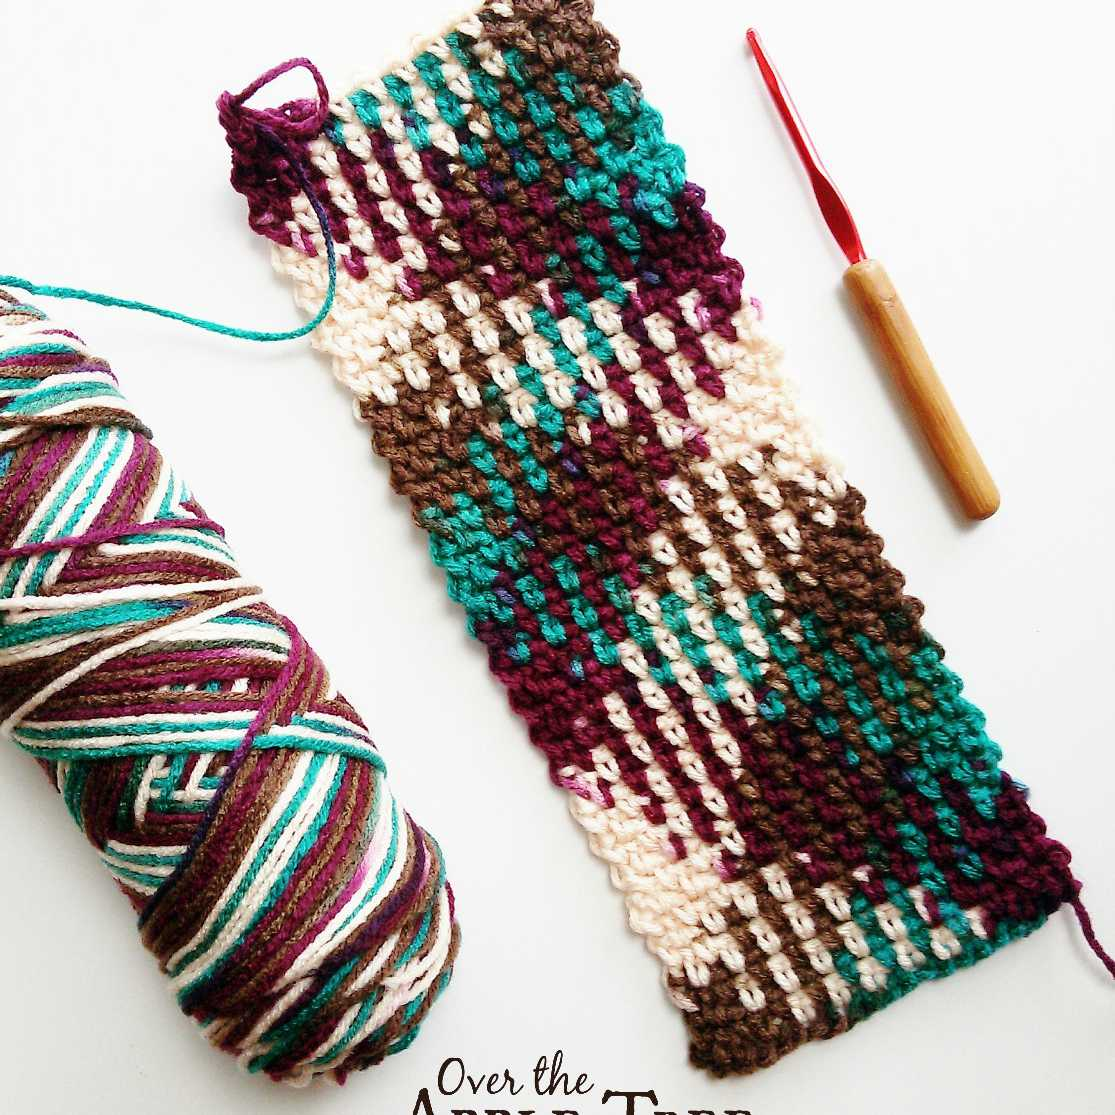 Christmas Colored Yarn With Colorwork Planned Pooling In Crochet